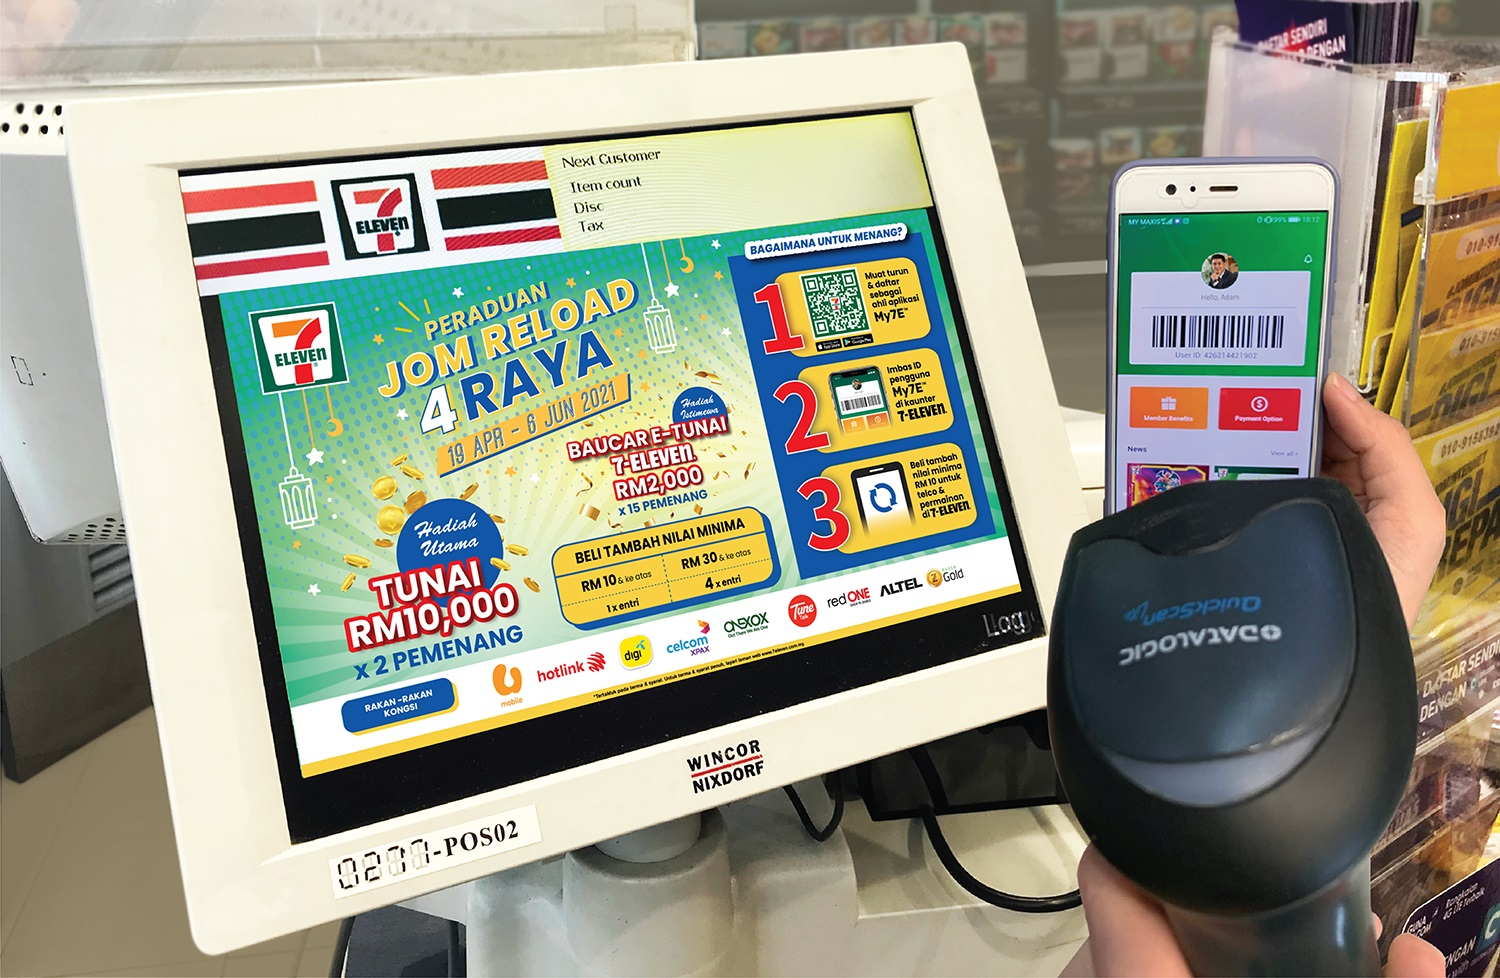 Jom Reload 4 Raya at 7-Eleven With RM50,000 in Prizes Up For Grabs - Life is Ohsem